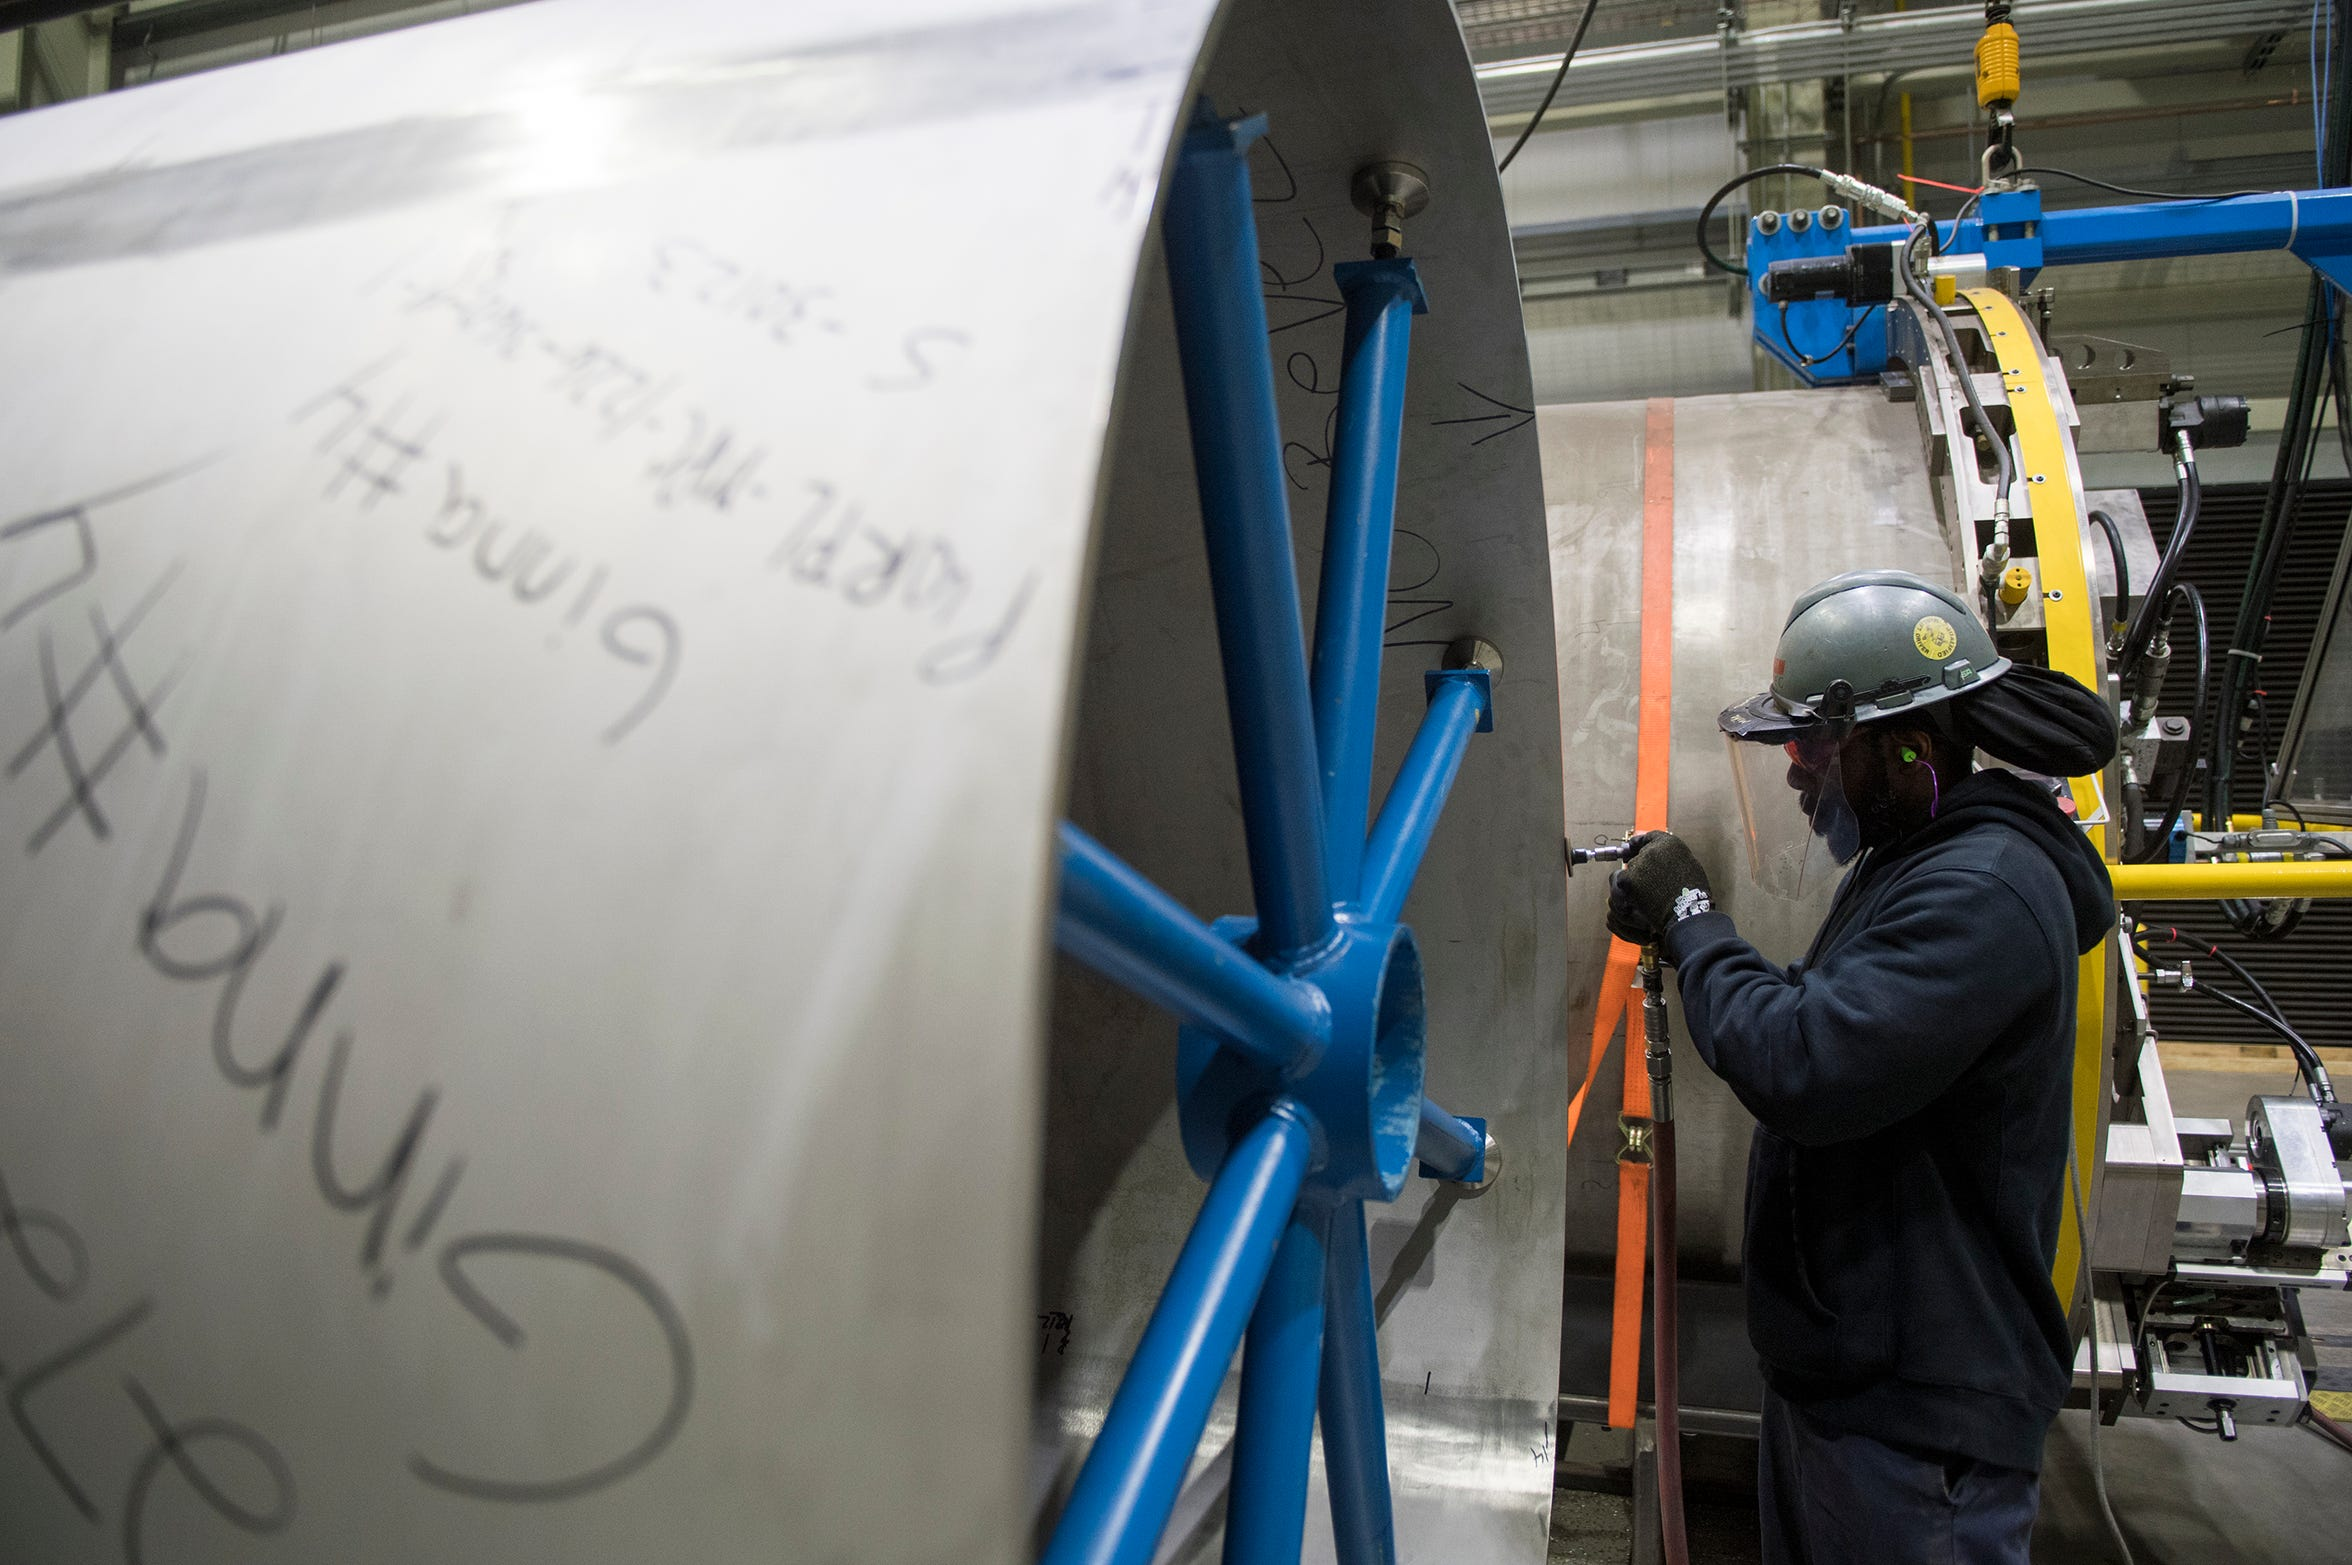 Welder Carlos Haynes smoothes the surface of a canister inside Holtec International in Camden, N.J. Friday, May 10, 2019.